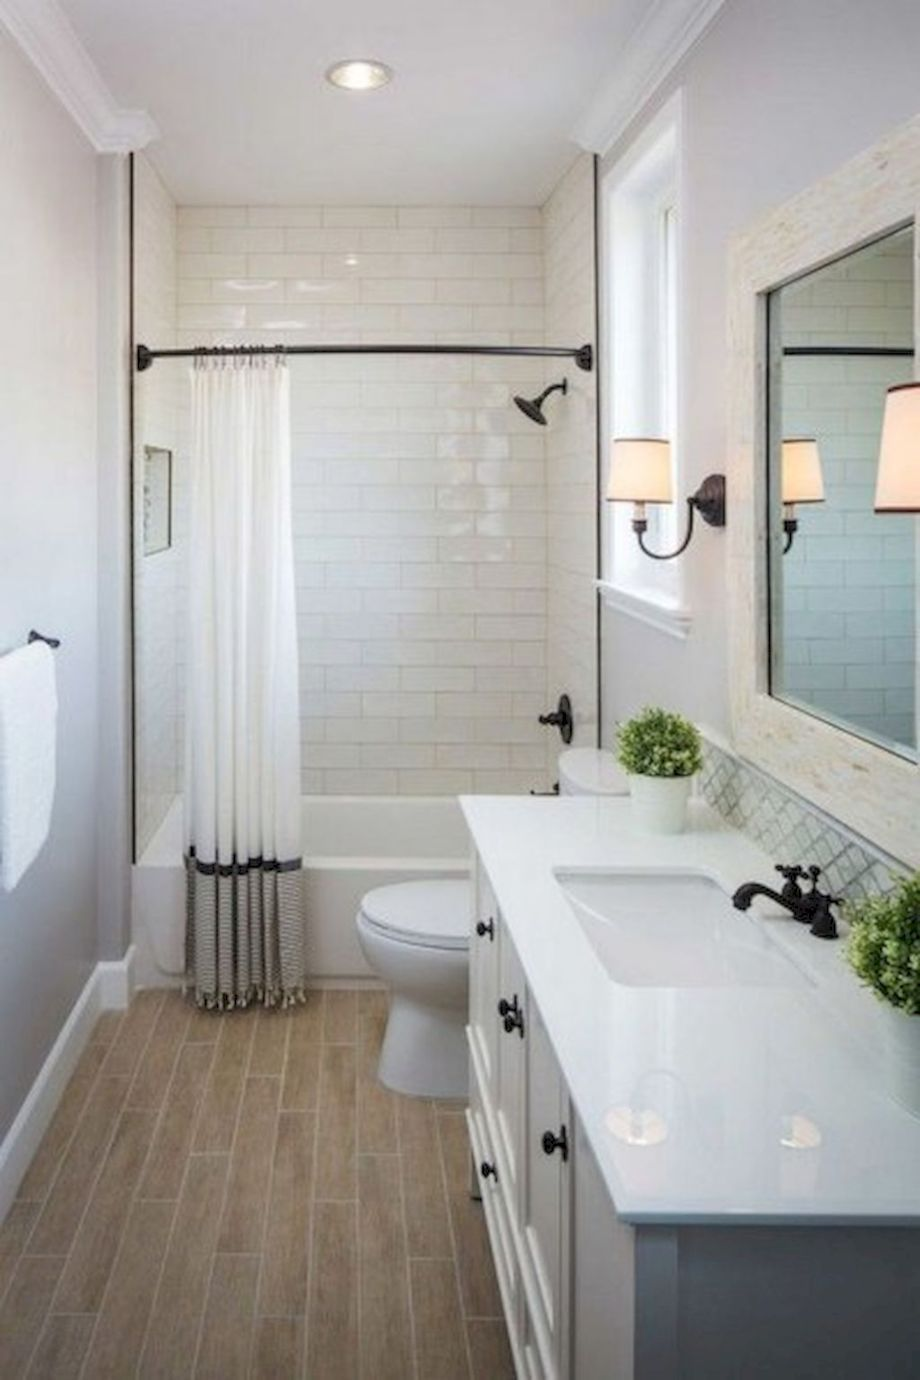 72 Lovely Small Master Bathroom Remodel On a Budget | Master ...